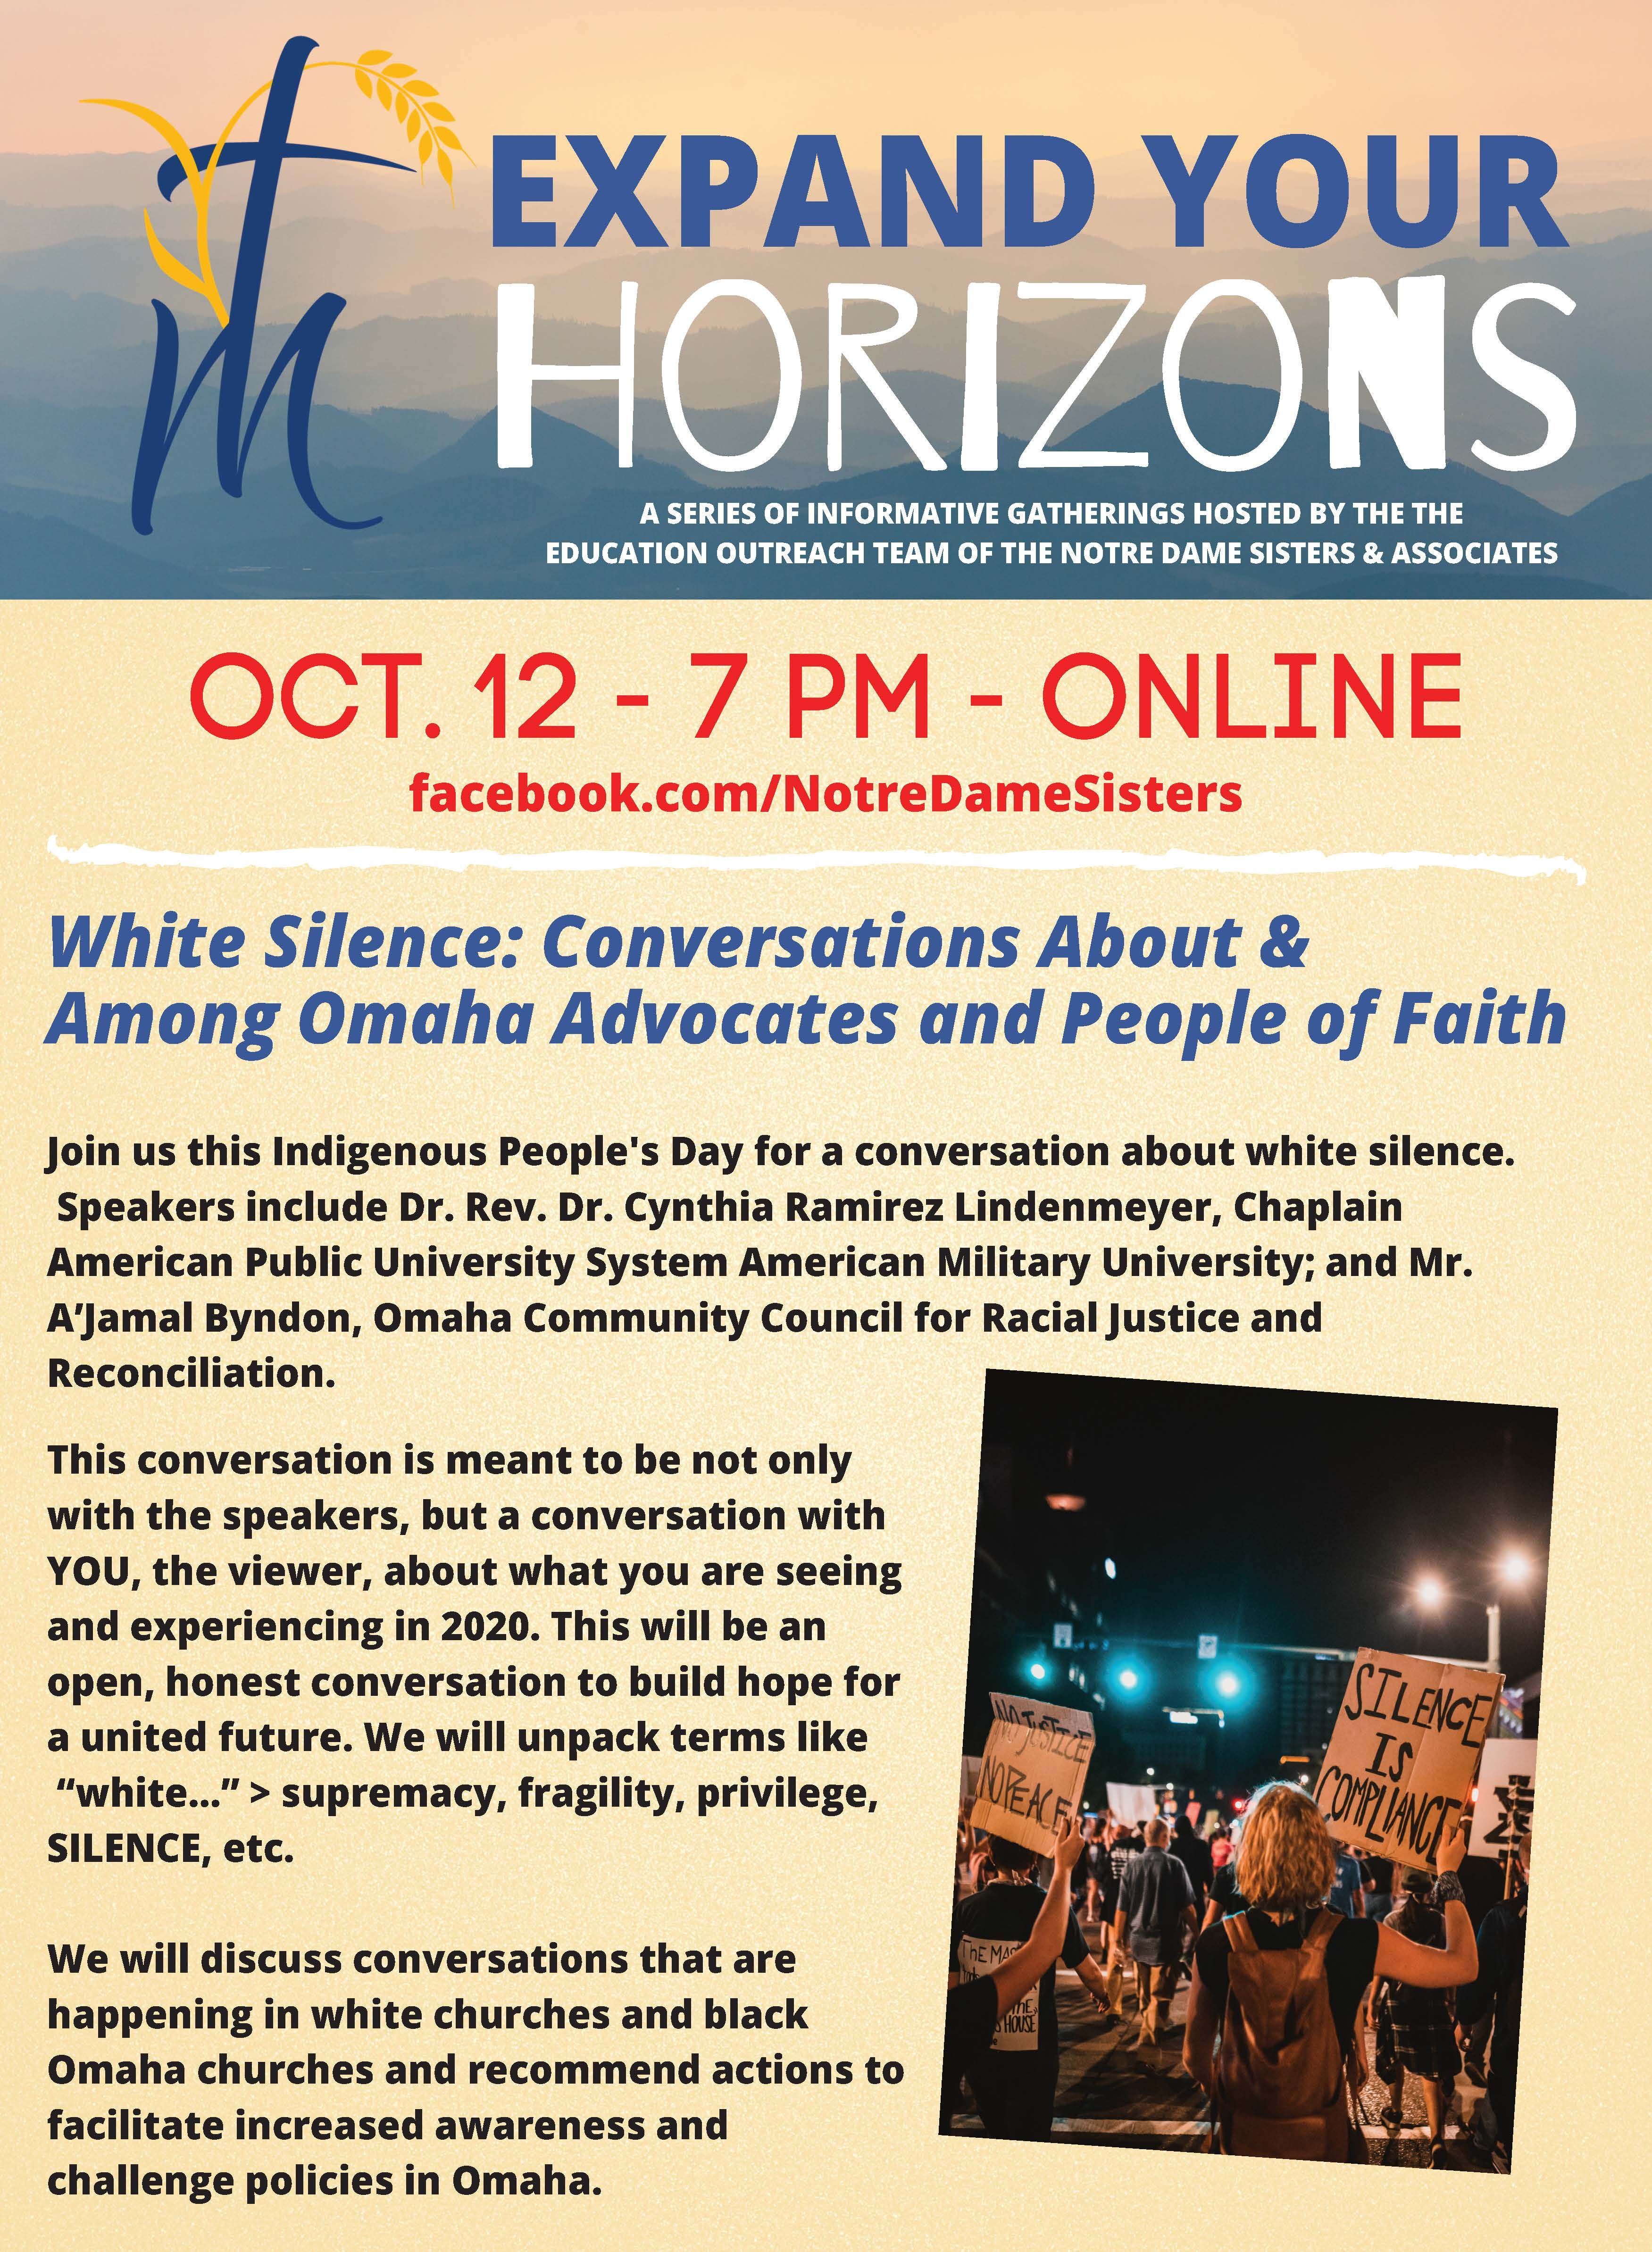 White Silence: Conversations About & Among Omaha Advocates and People of Faith